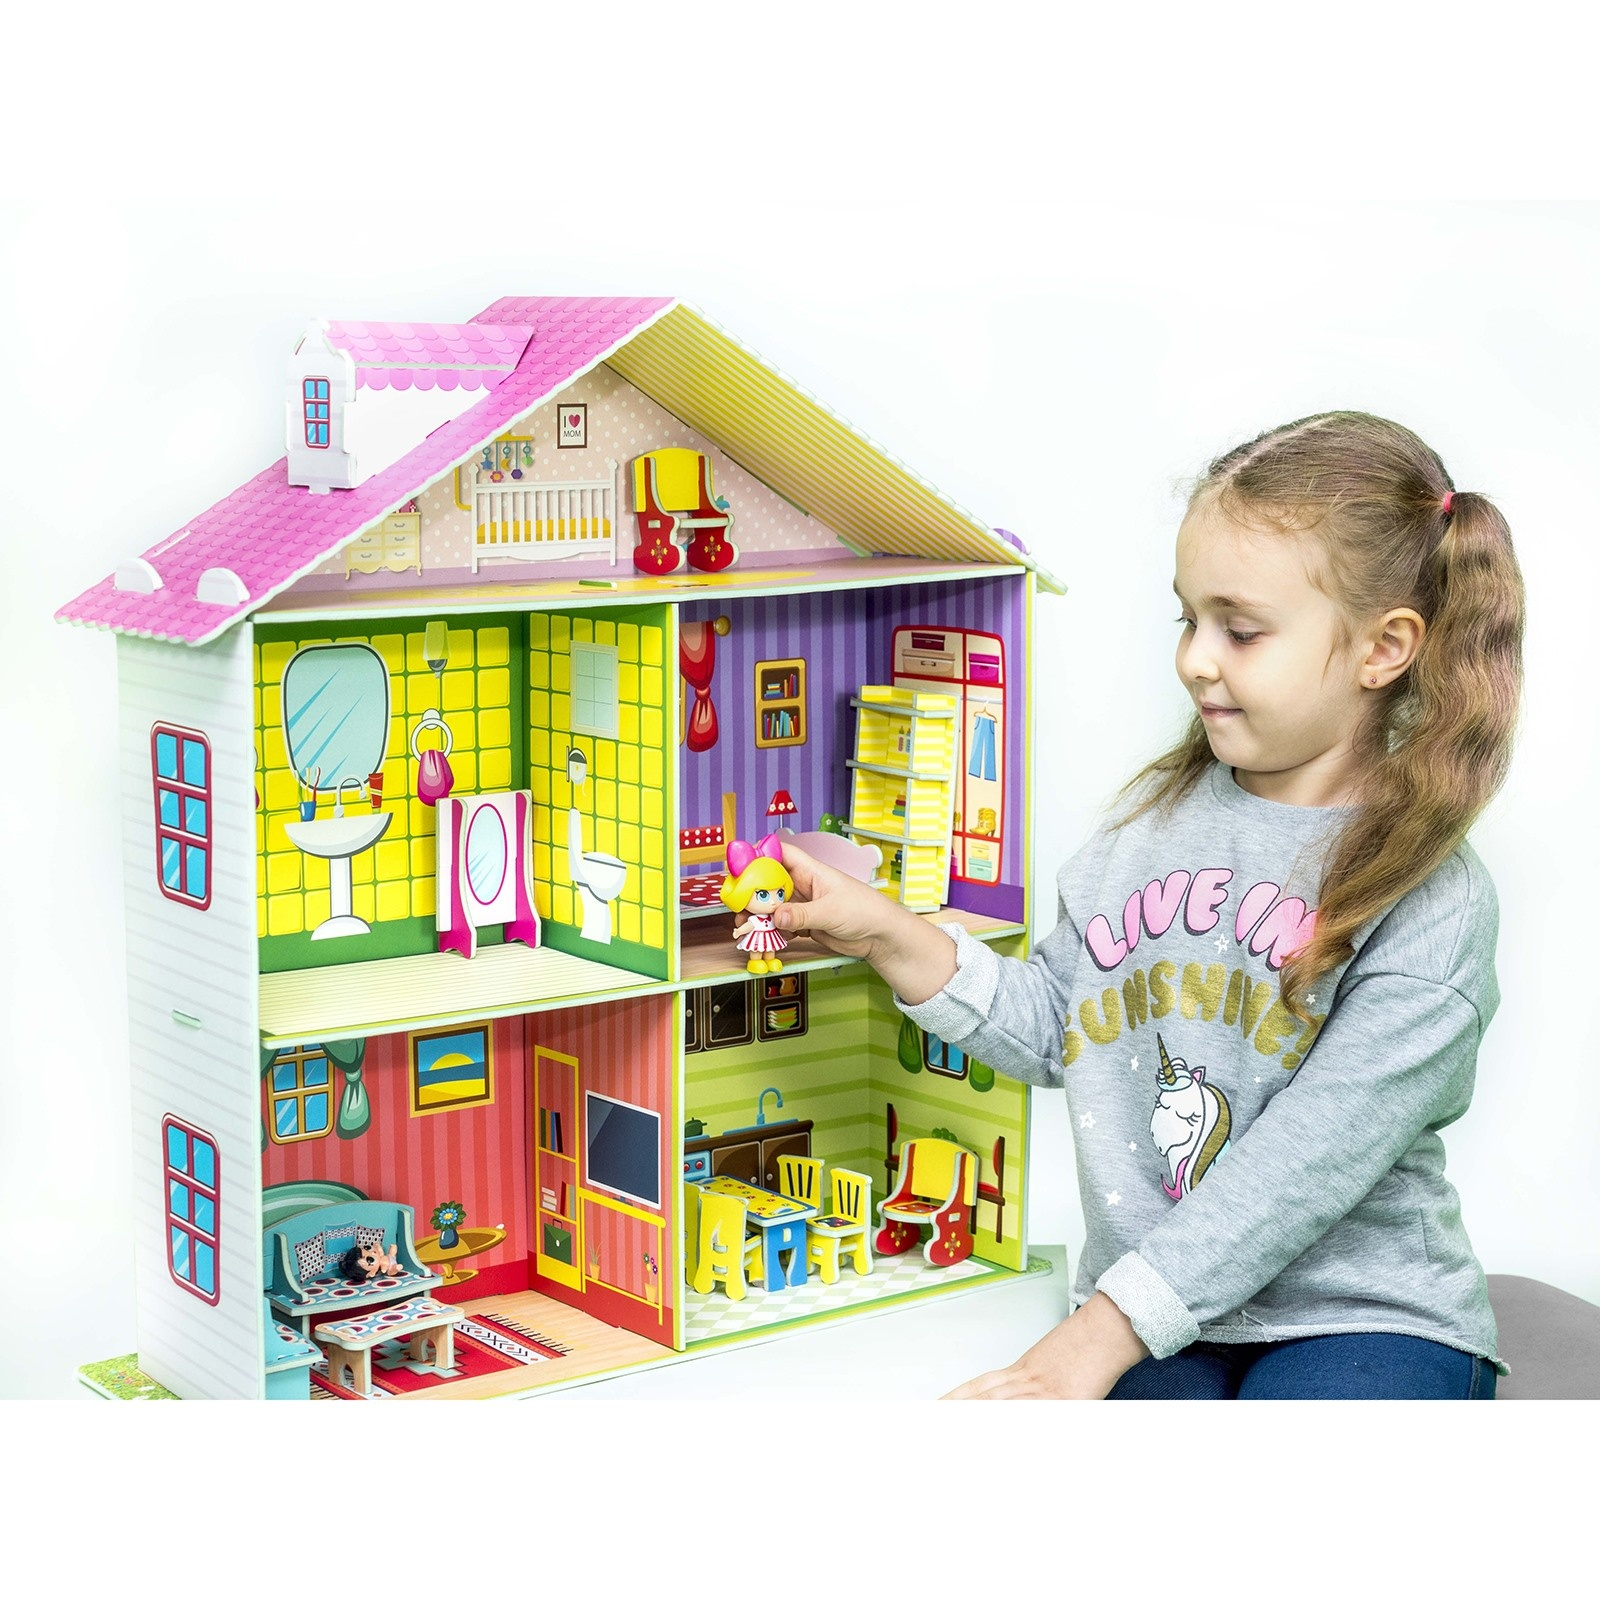 Ebebek Dıy Toy Rose Doll Game House